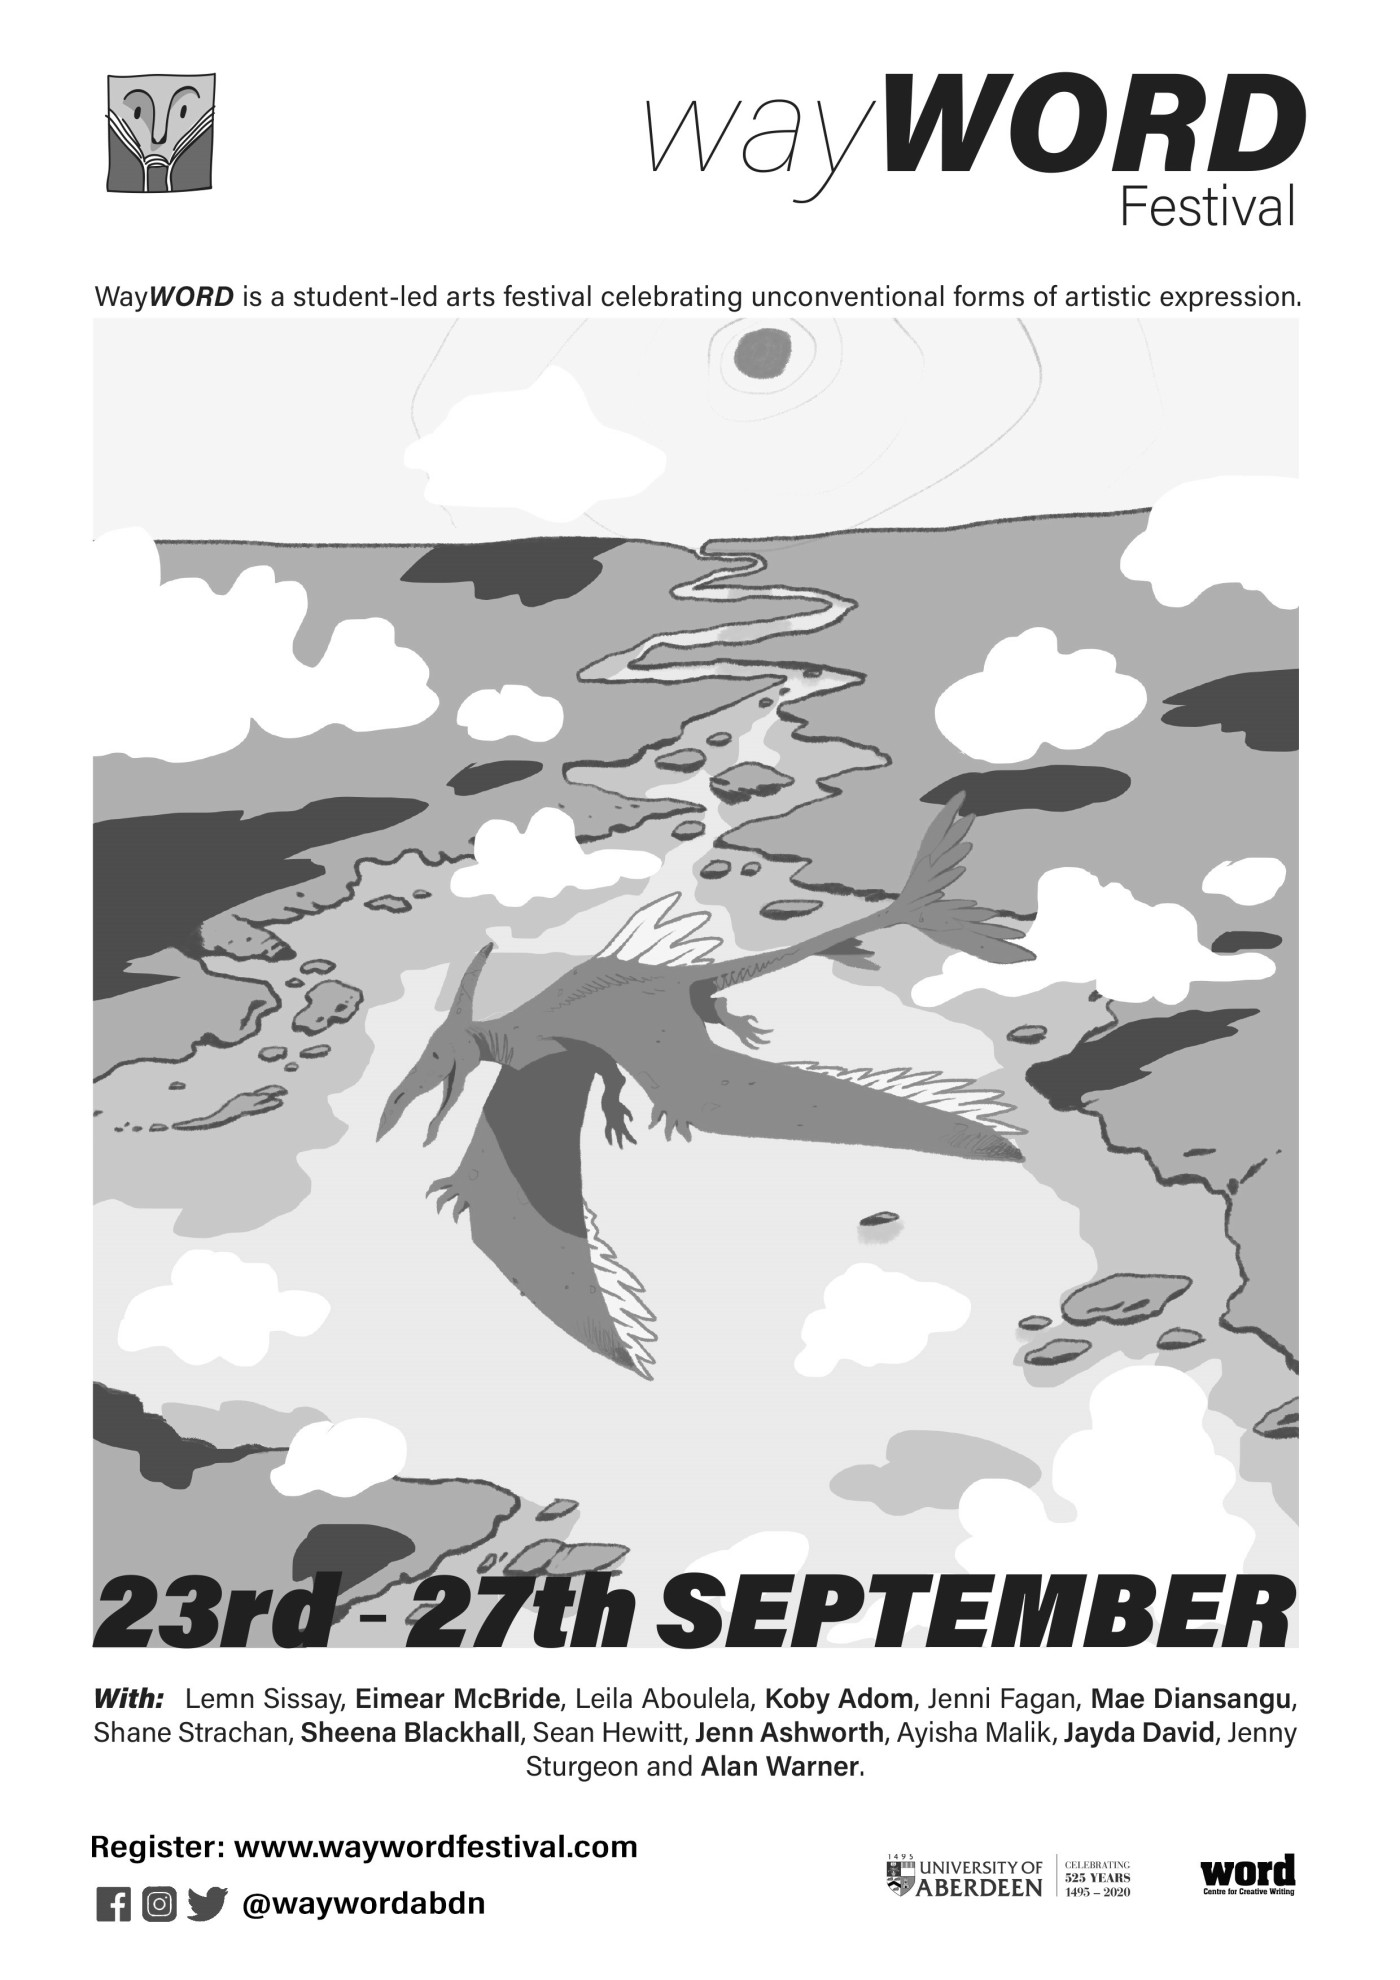 Greyscale. The WayWORD 2020 poster, featuring a dragon flying over hills and that it was from the 23rd to 27th of September.